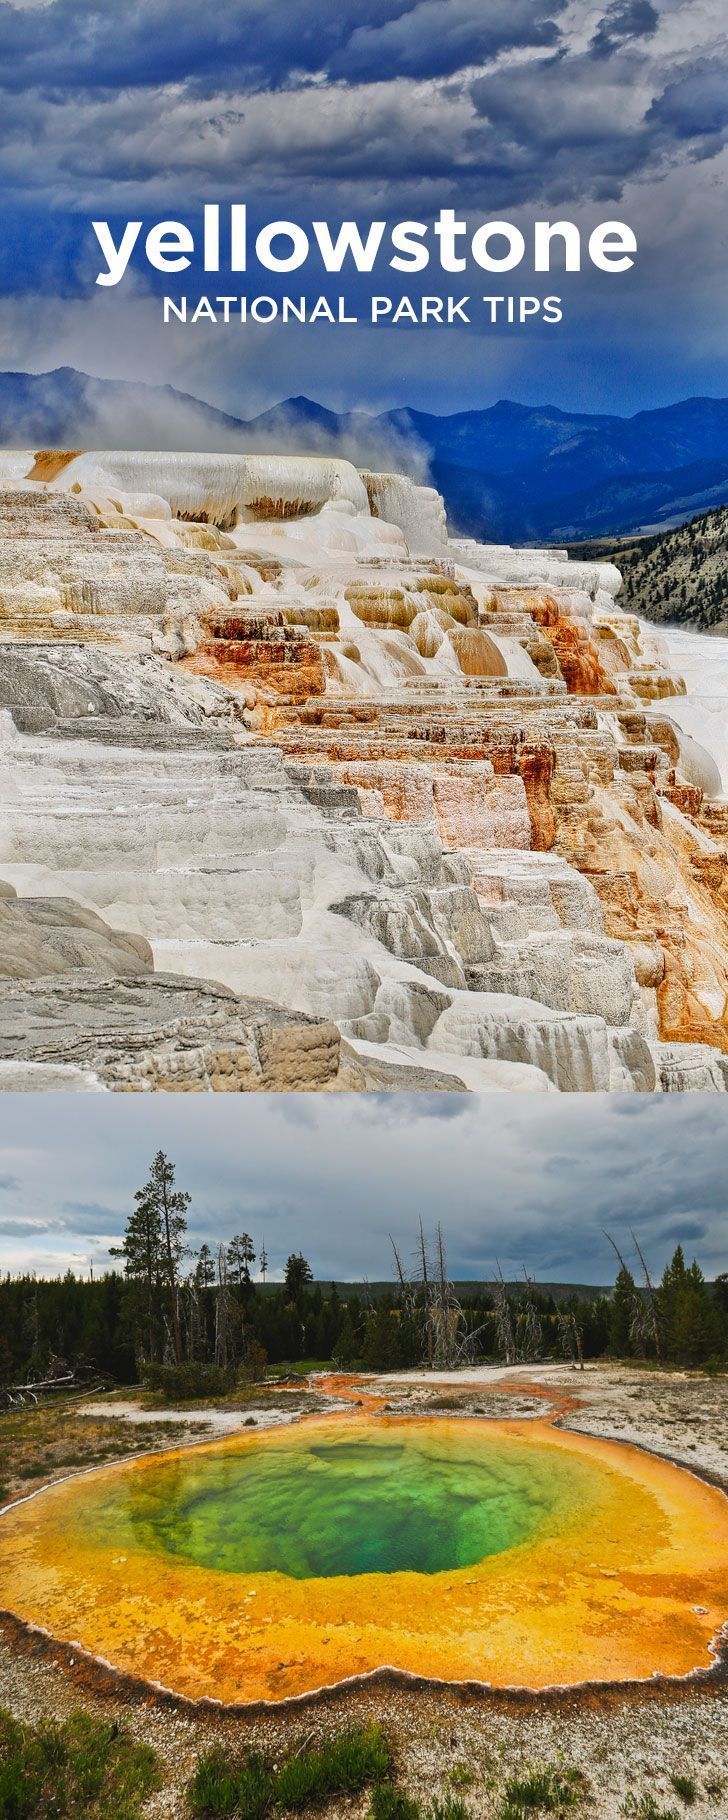 The Best Way to See Yellowstone Where to Spot Wildlife Best Day Hikes